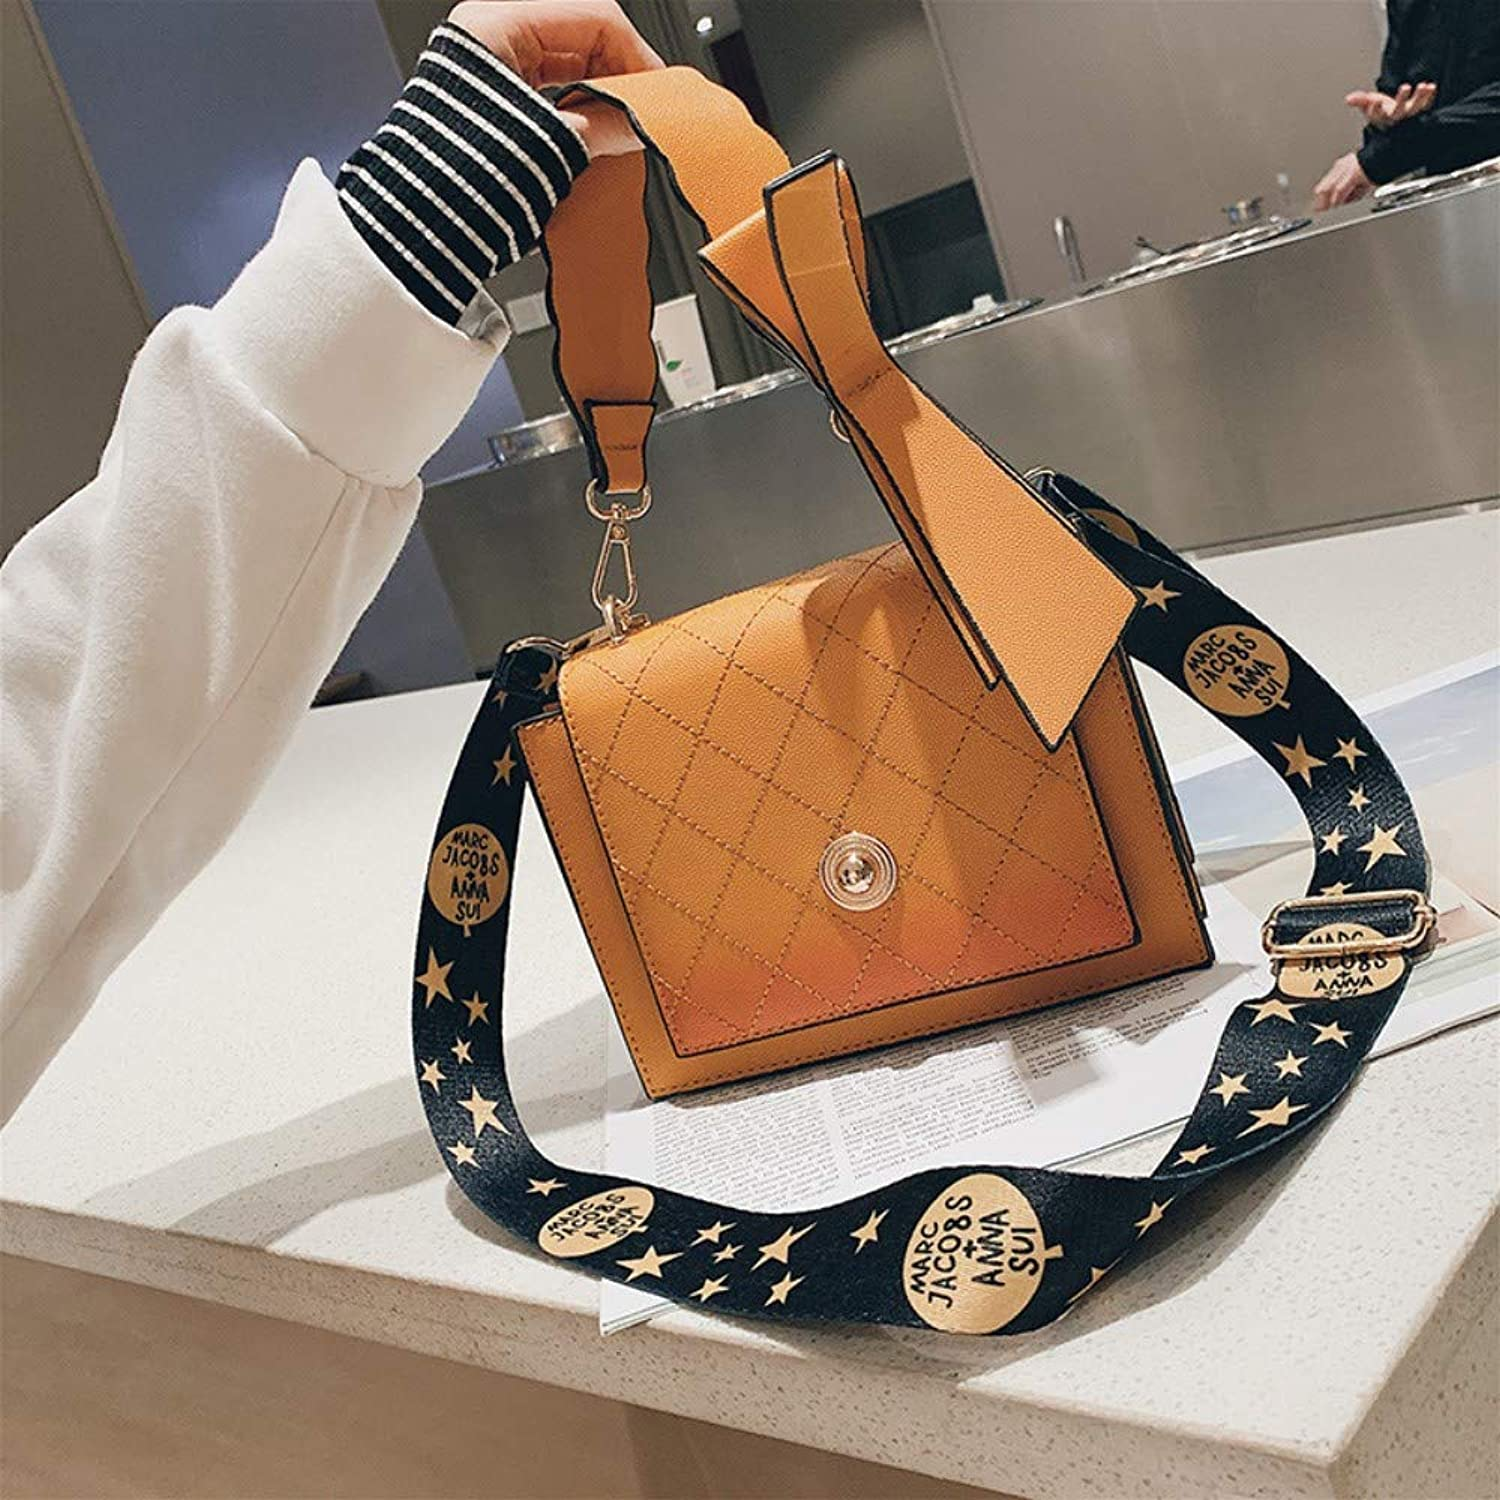 f81a2b0a8902 Shoulder Bag,Women Bow Decoration Handbag,CrossBody Bag,Ladies ...